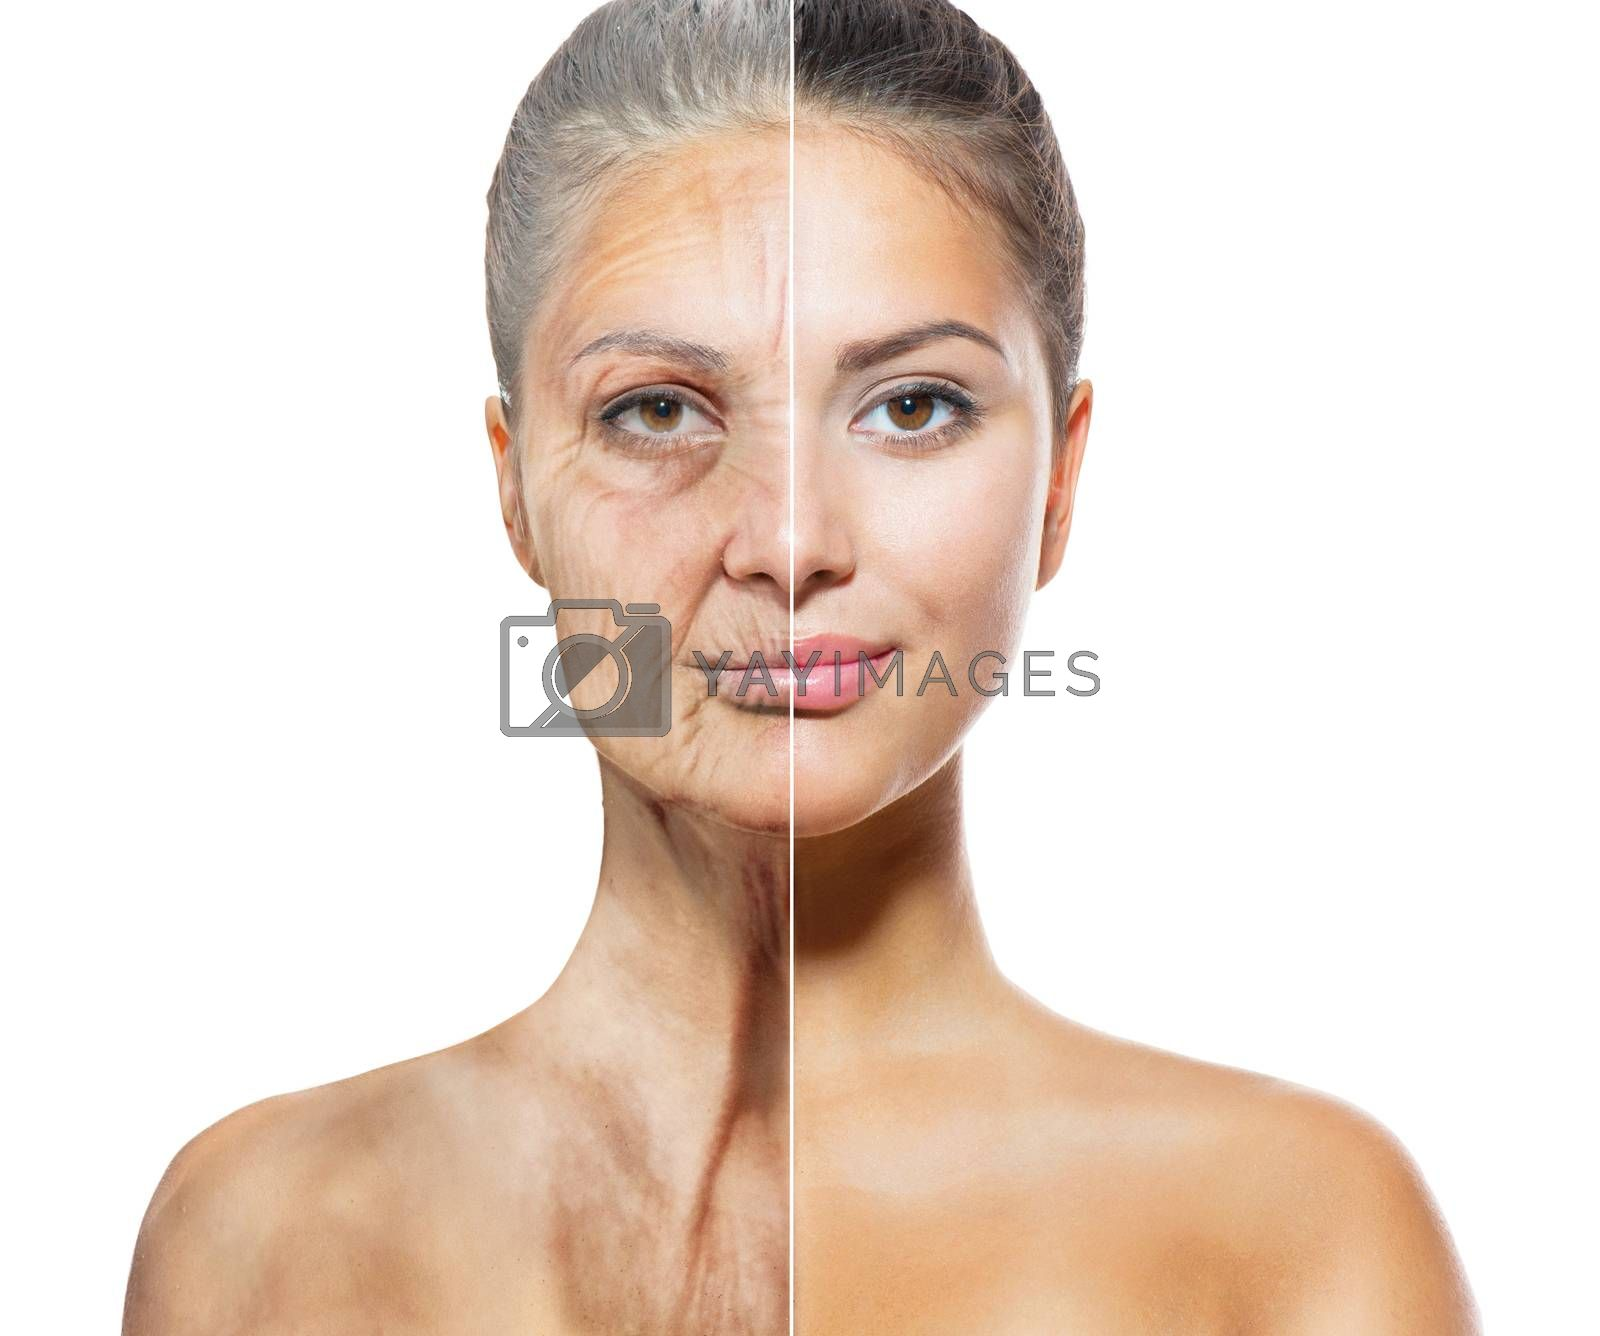 Aging and Skincare Concept. Faces of Young and Old Women by SubbotinaA